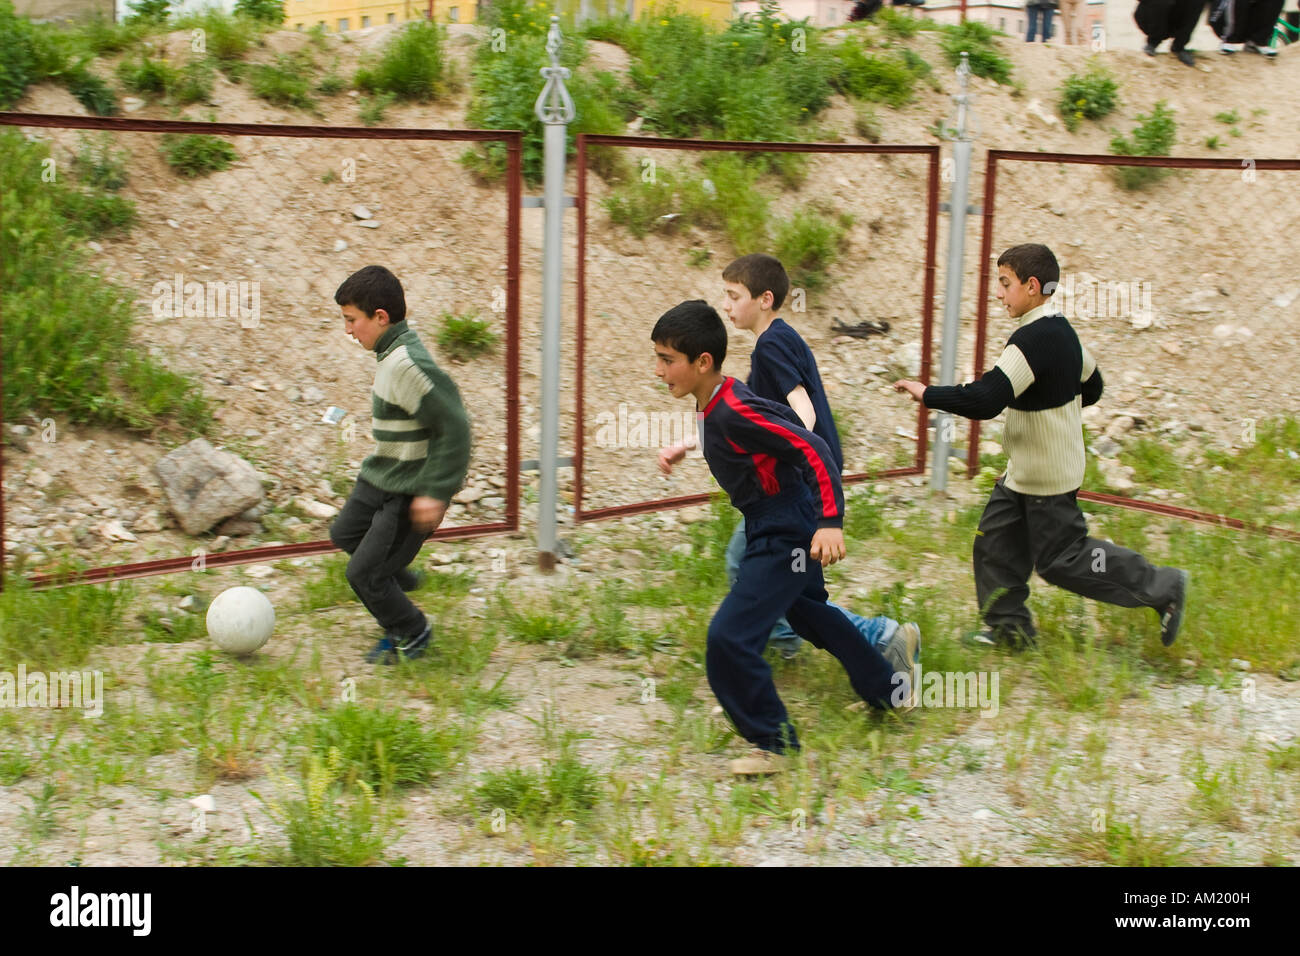 ARMENIA Vanadzor Four school age boys play soccer outdoors in weedy fenced play area run after ball in group - Stock Image